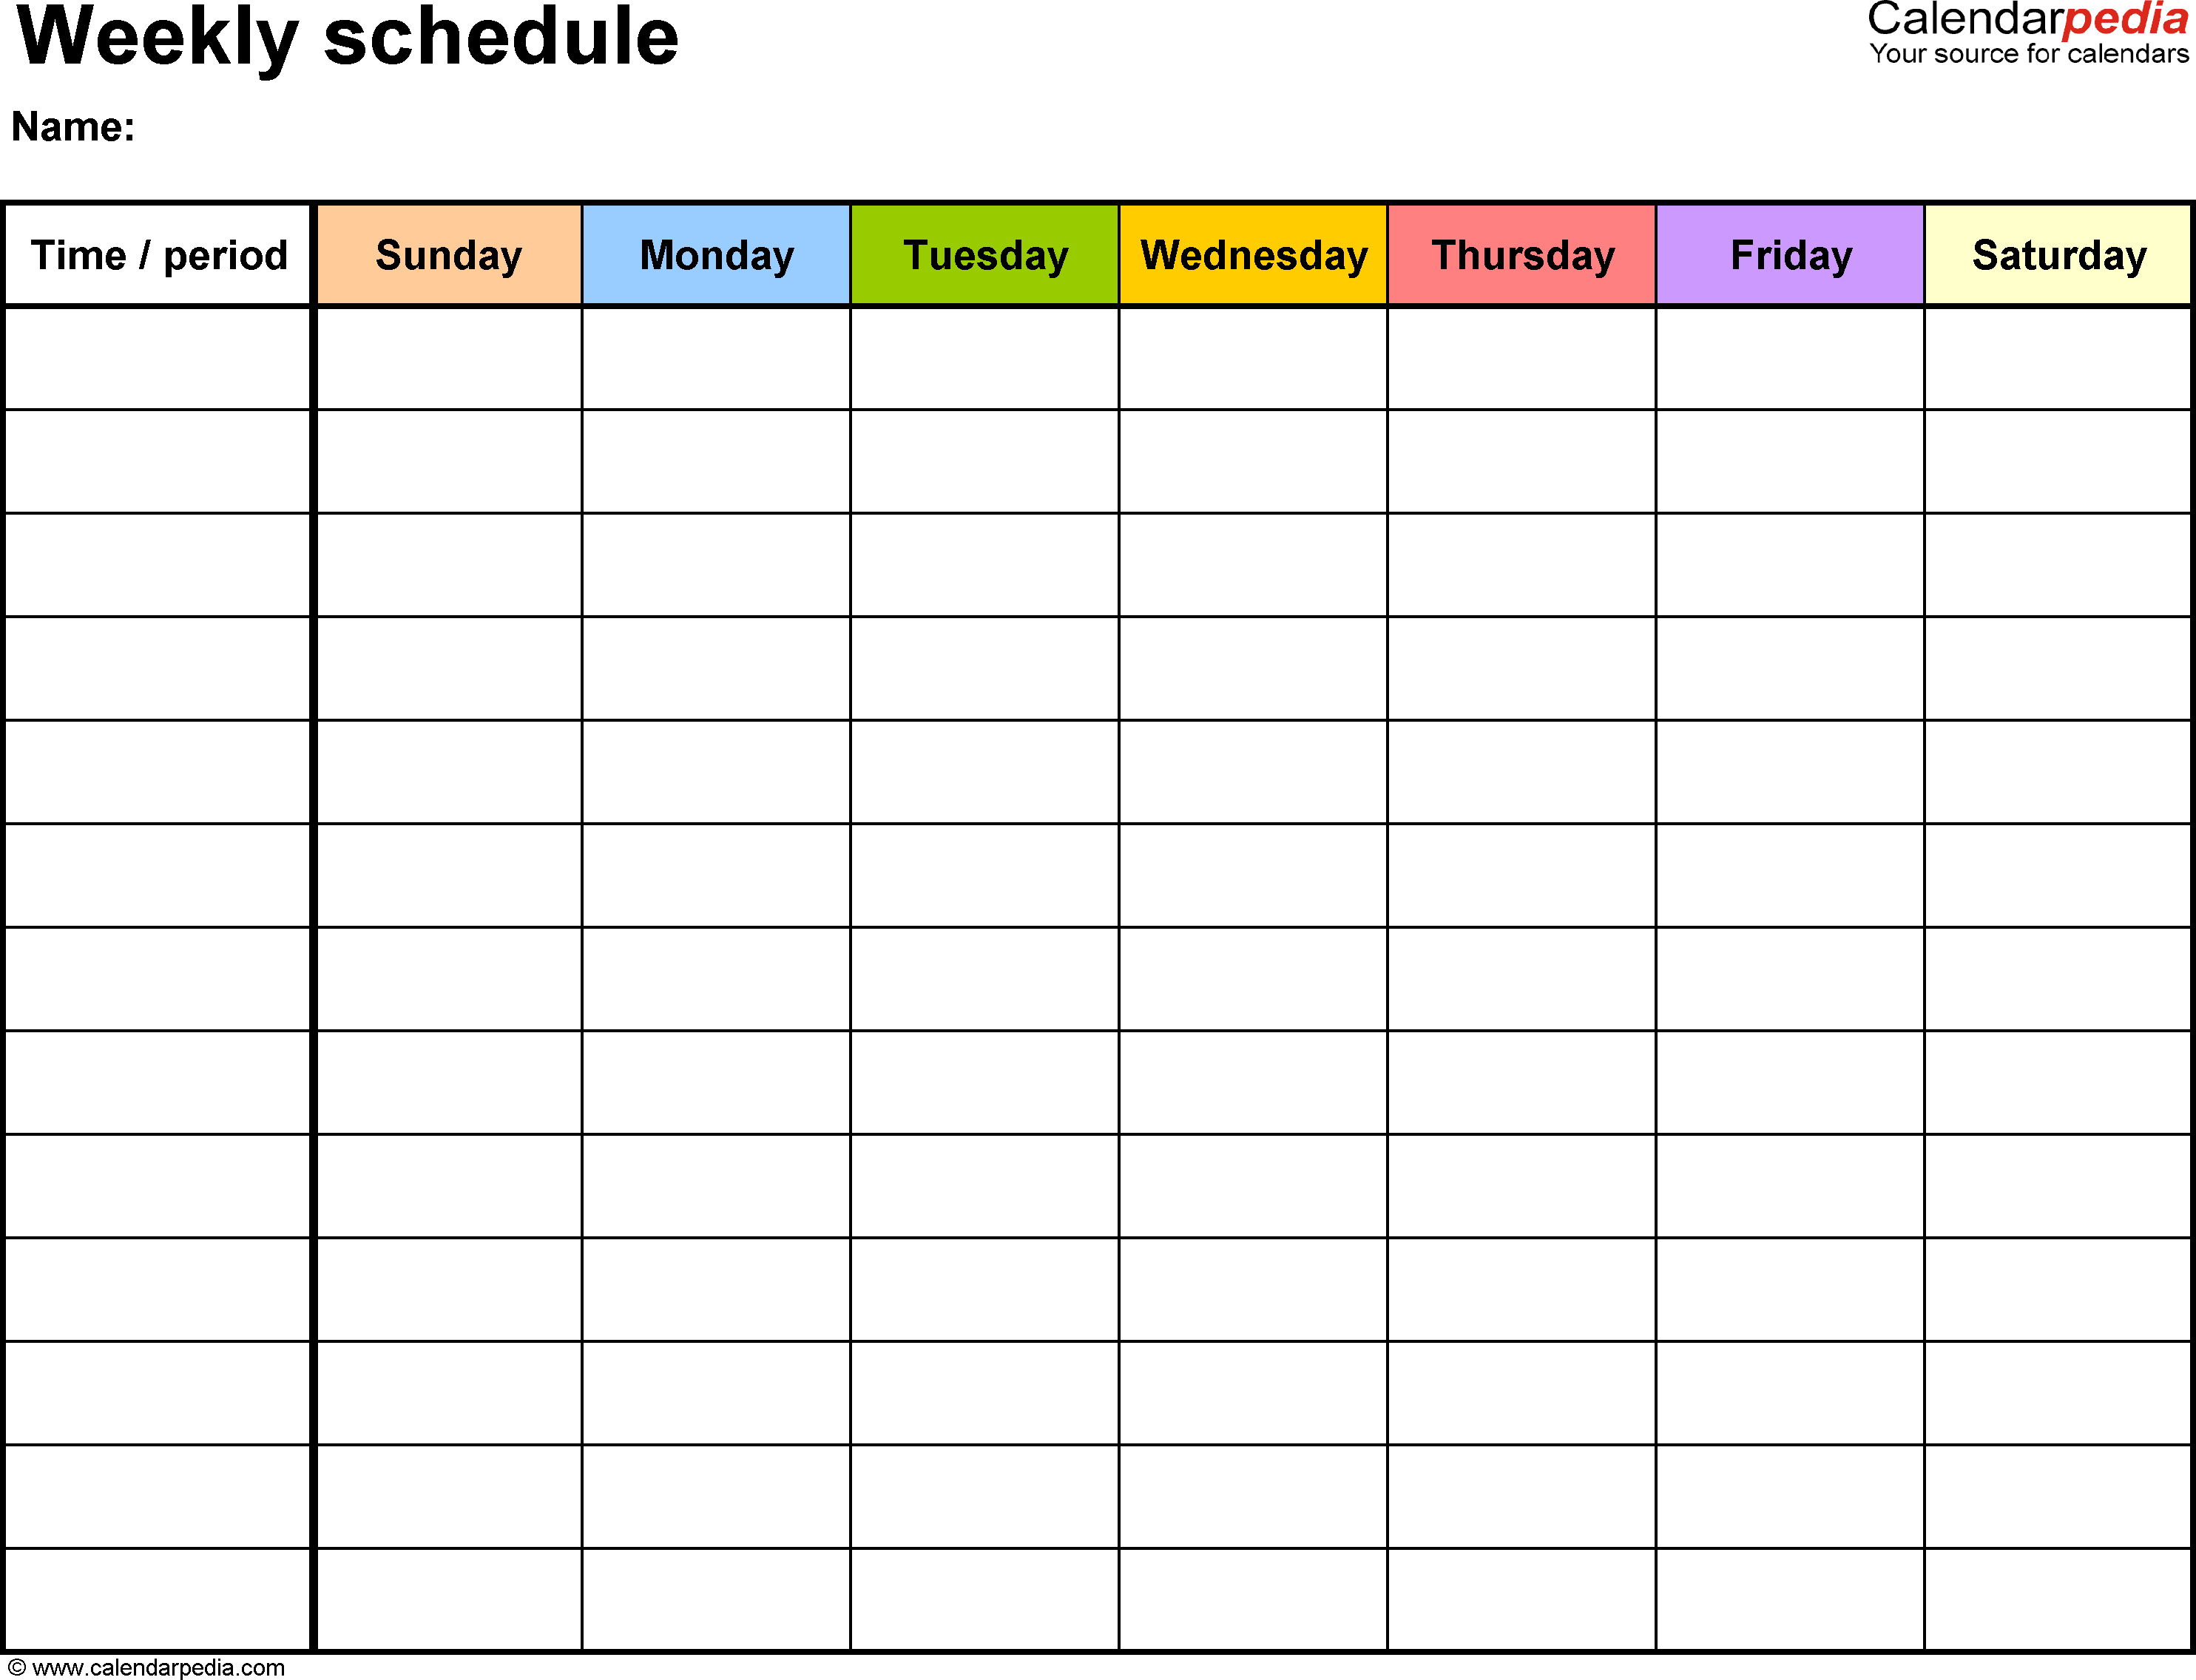 Free Weekly Schedule Templates For Excel - 18 Templates with Blank Calendar Of Events Template